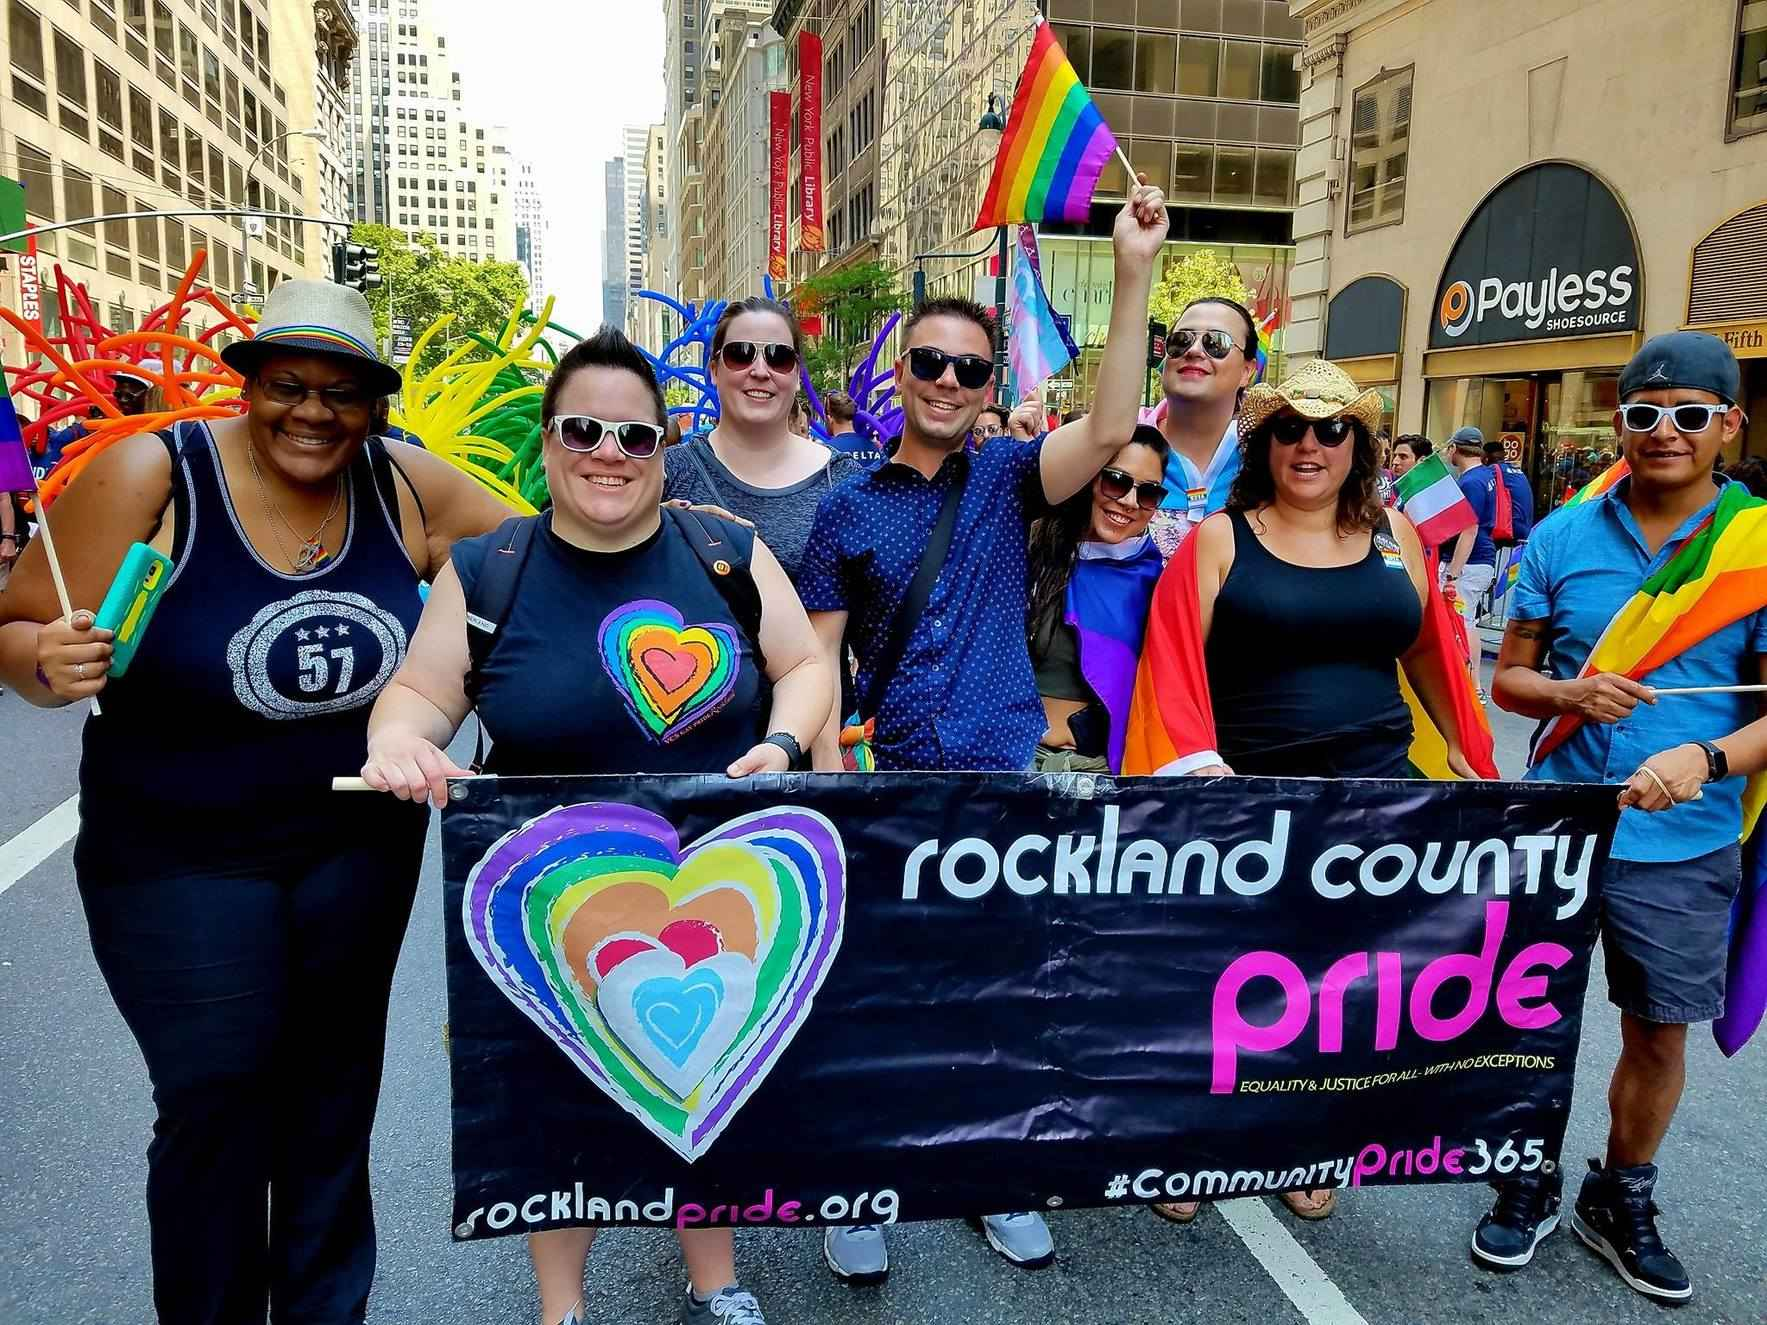 20th Anniversary Rockland Pride Sunday image